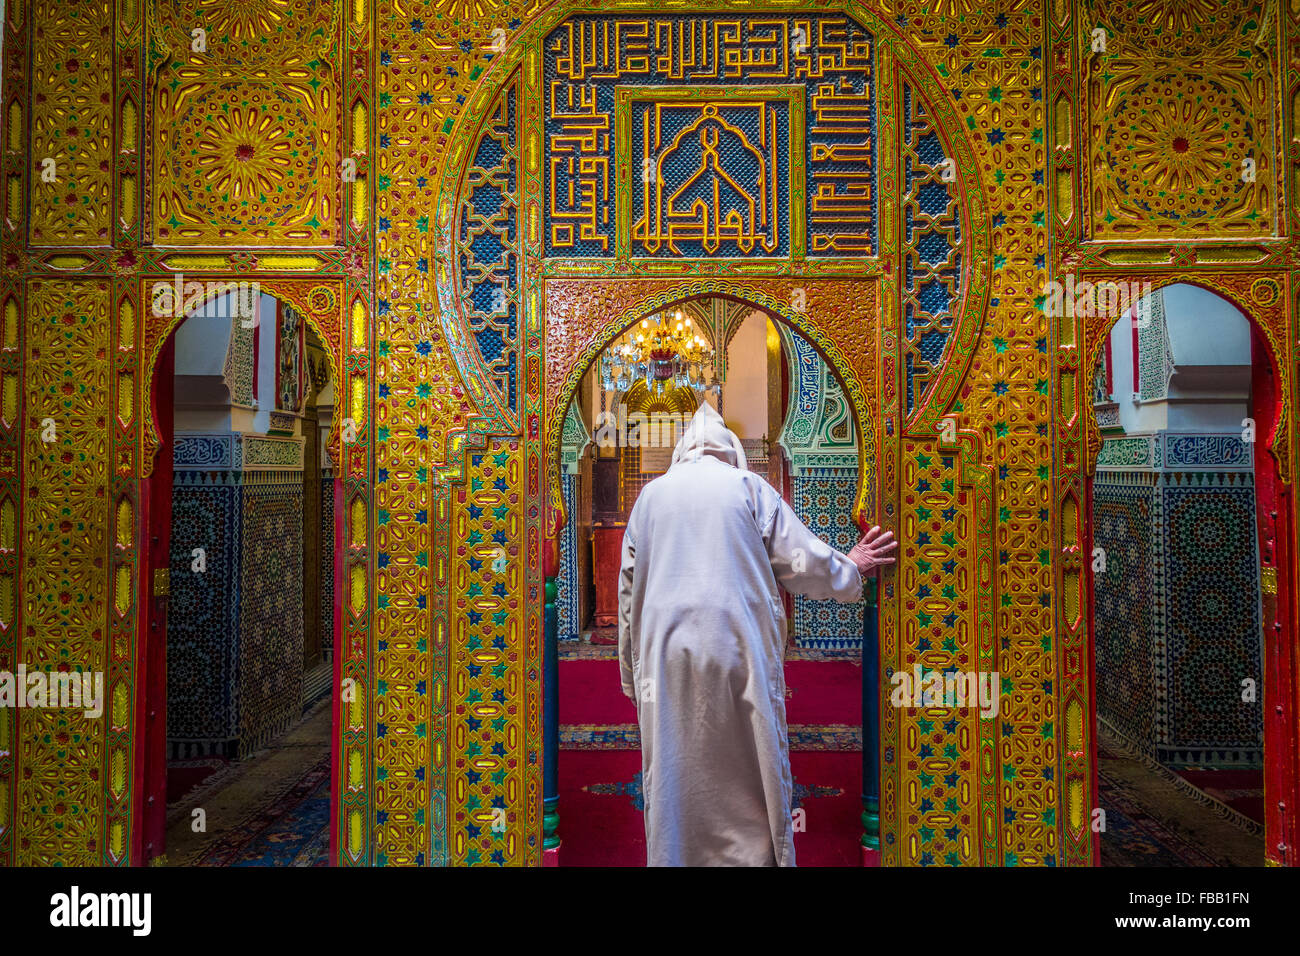 Man entering a mosque, Morocco - Stock Image